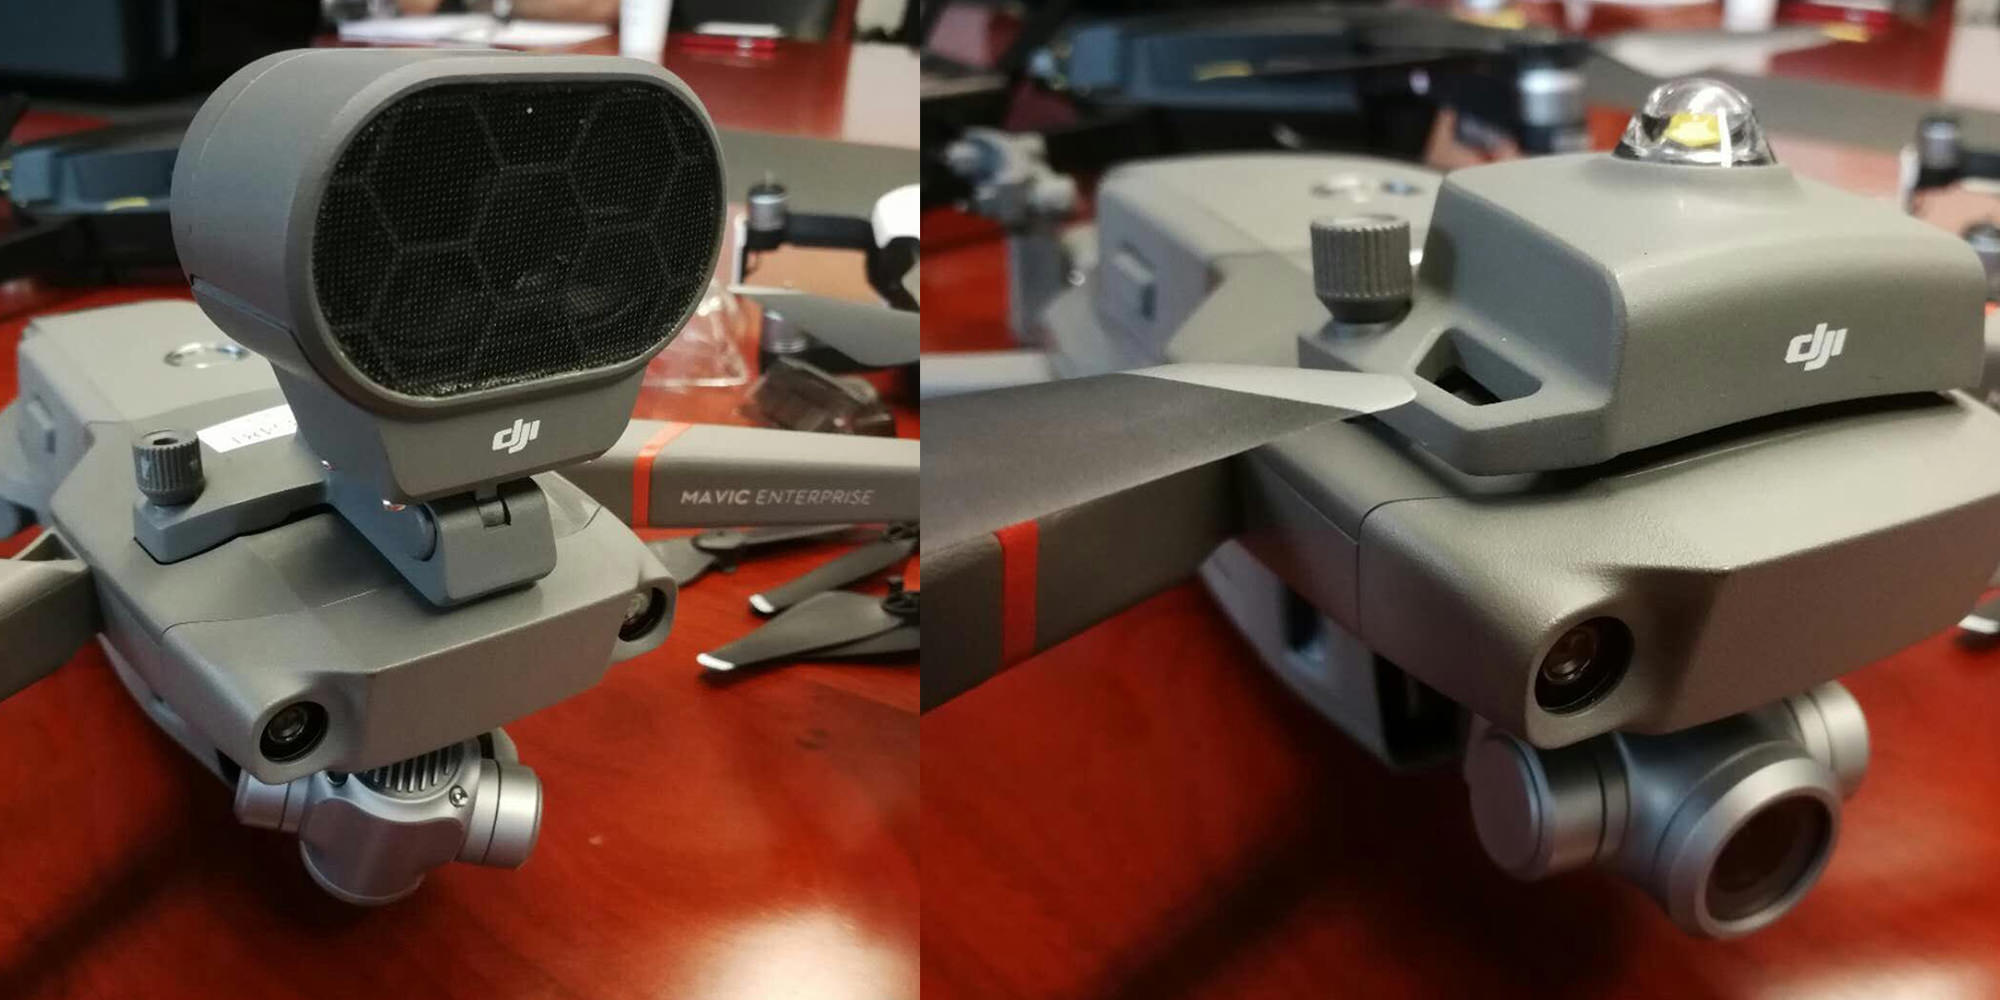 "New DJI Mavic 2 'Enterprise"" edition photos show up providing us with more details of the new foldable drone"